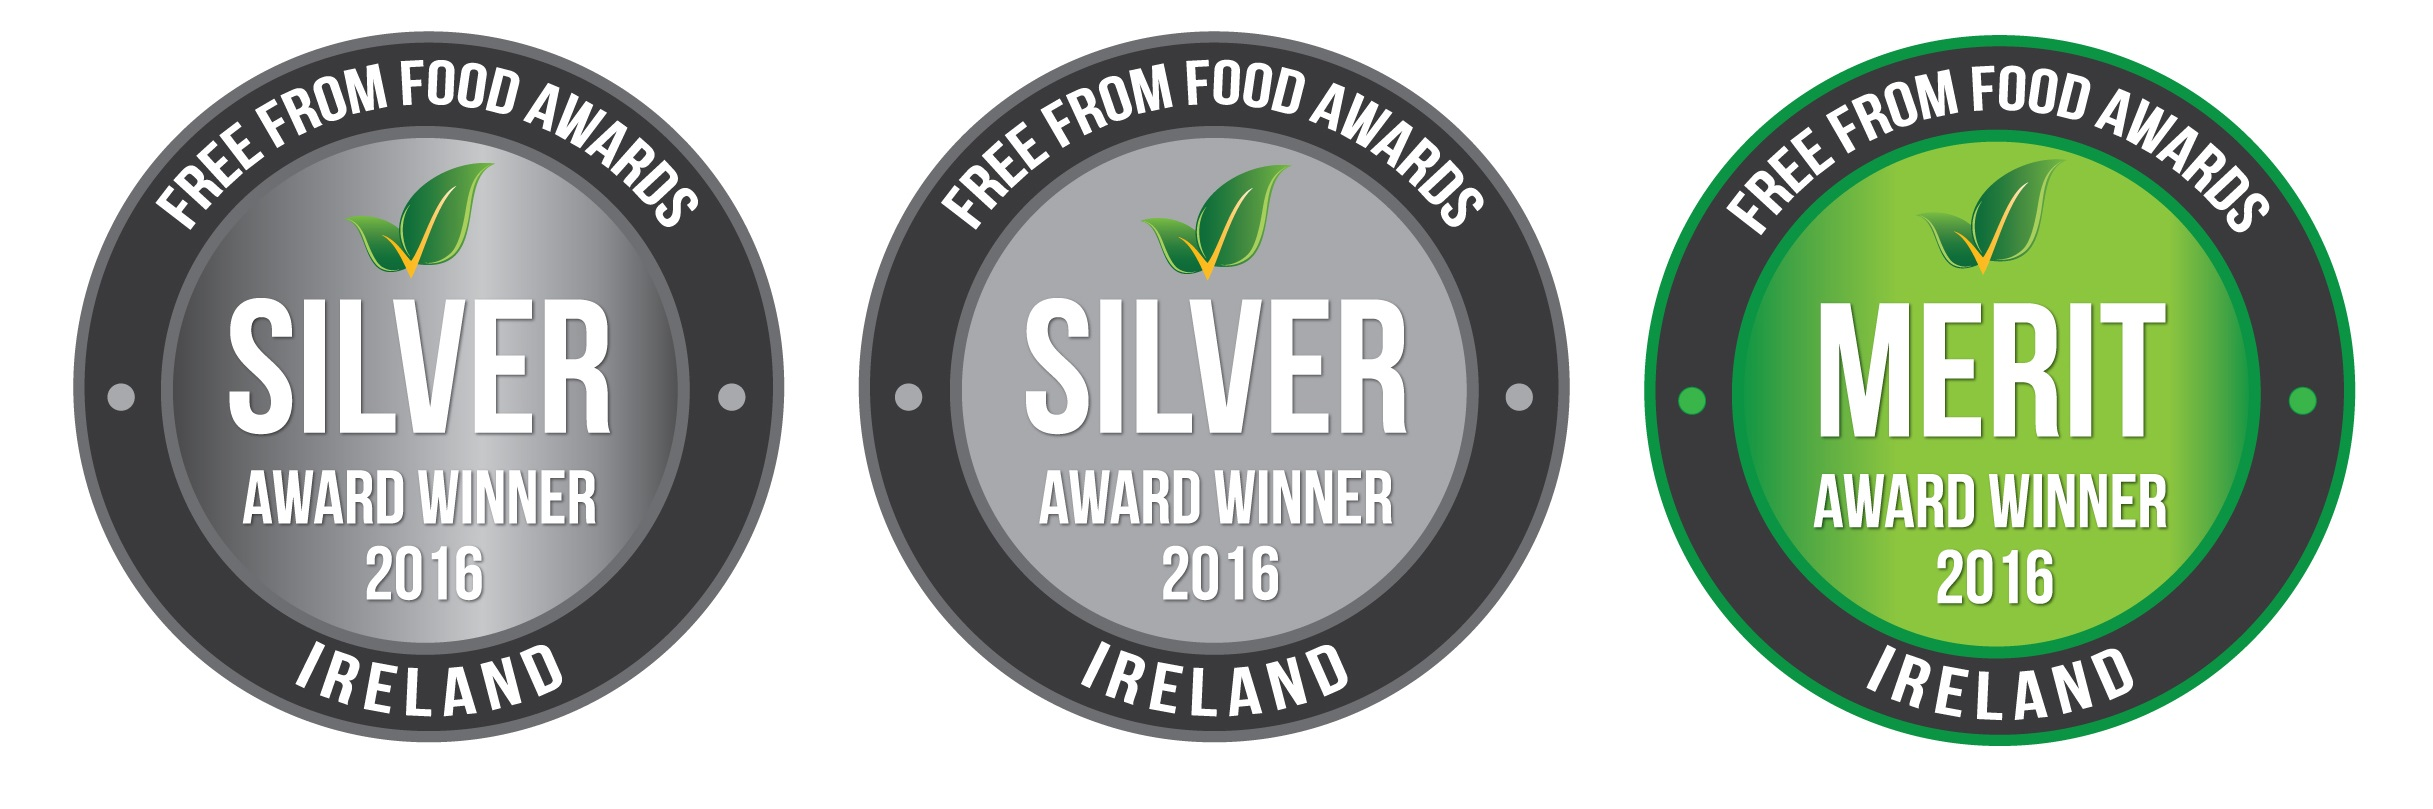 spice devils, freefrom food awards 2016, gluten free, winner